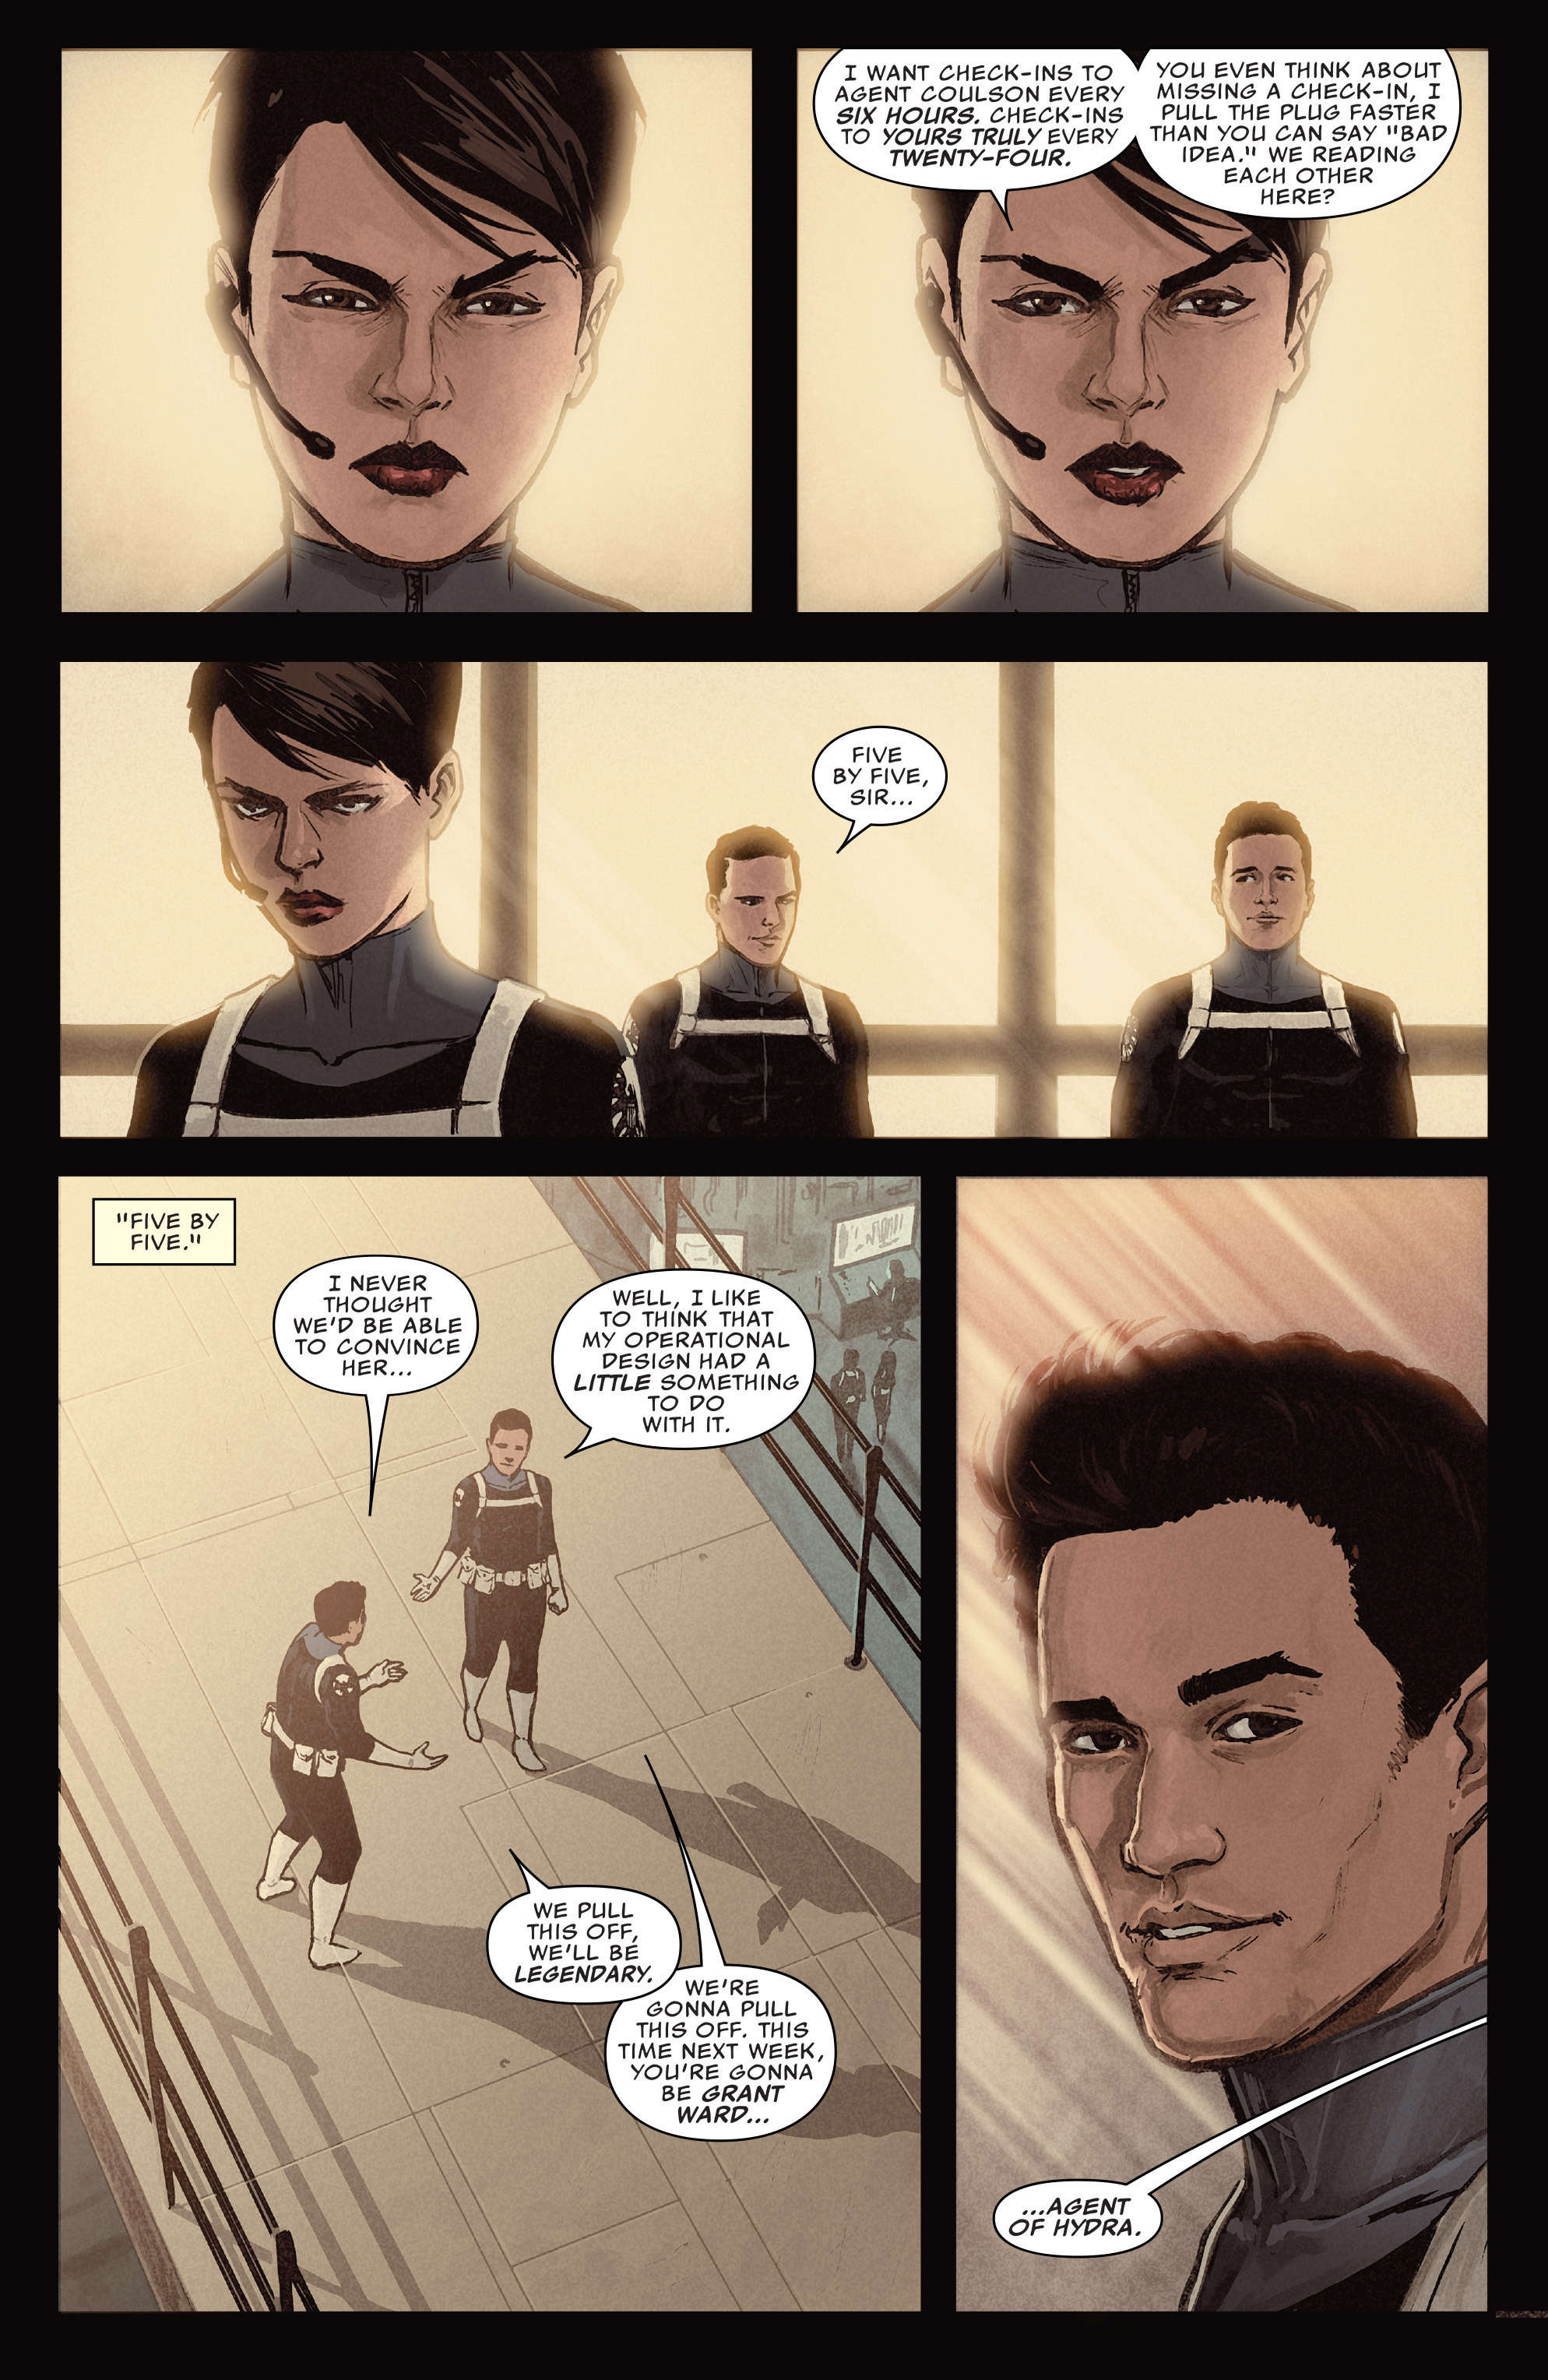 Read online Agents of S.H.I.E.L.D. comic -  Issue #5 - 6